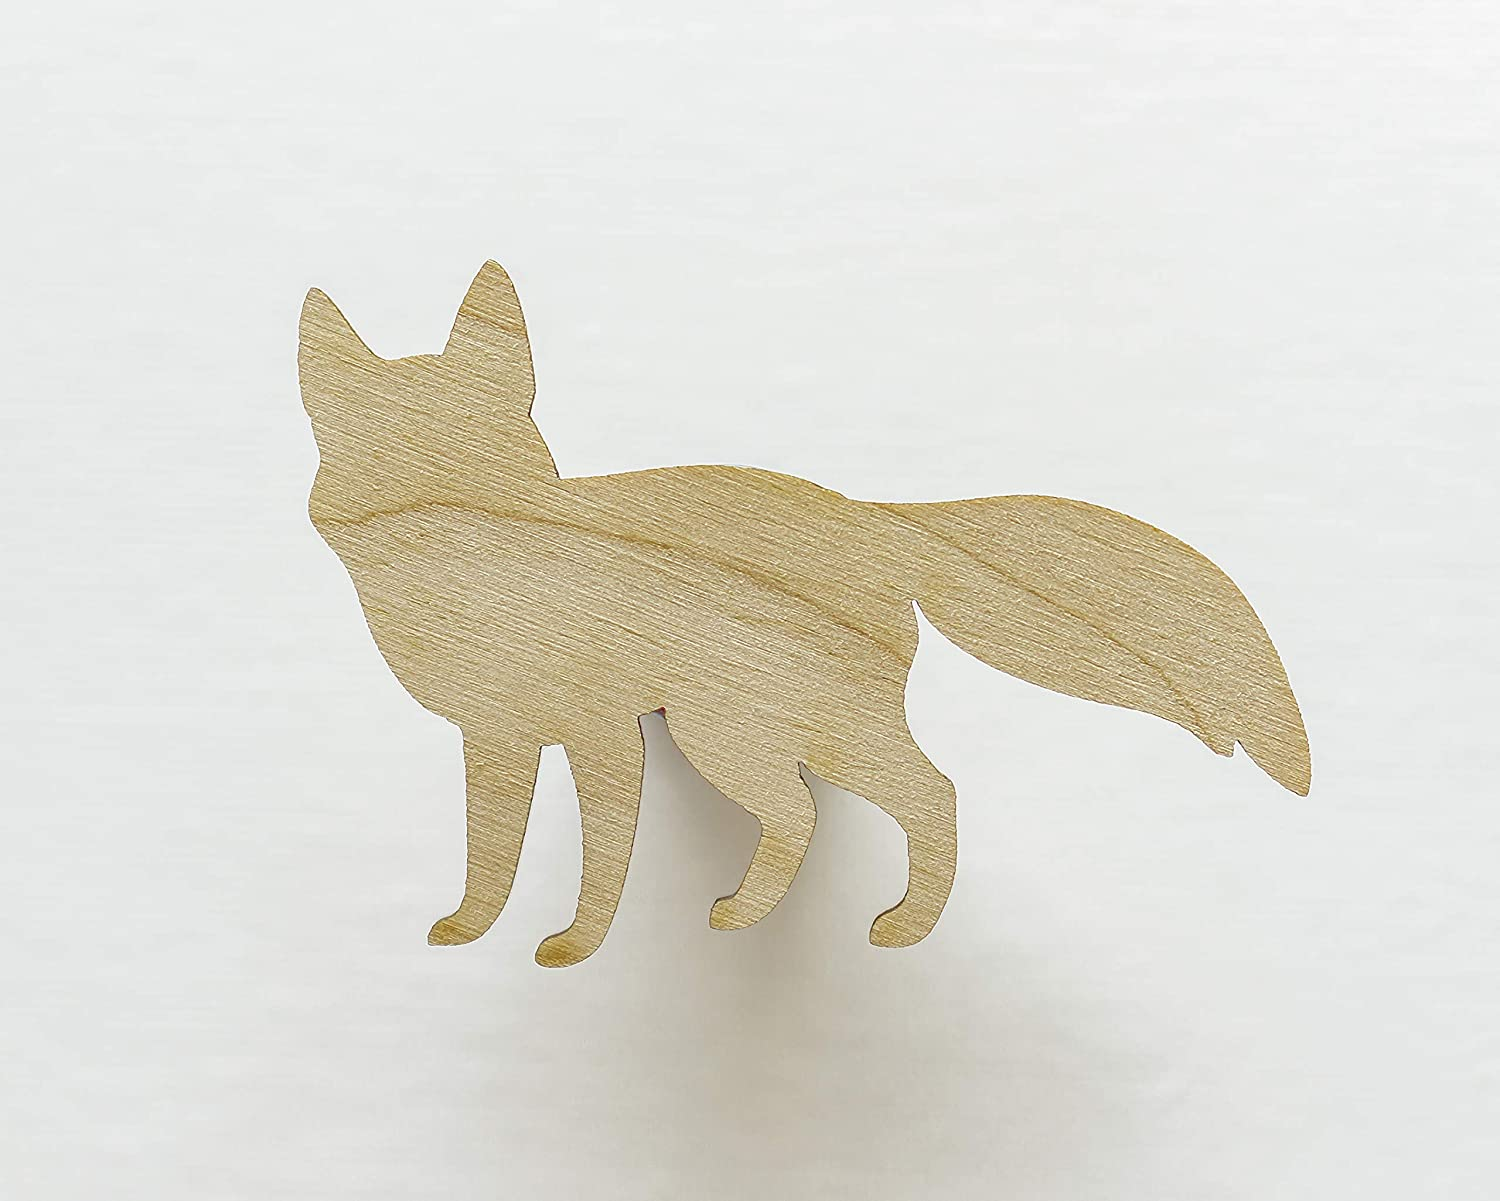 Max 76% OFF Unfinished wood Lowest price challenge shapes - Fox shape cutouts Woodland cutout